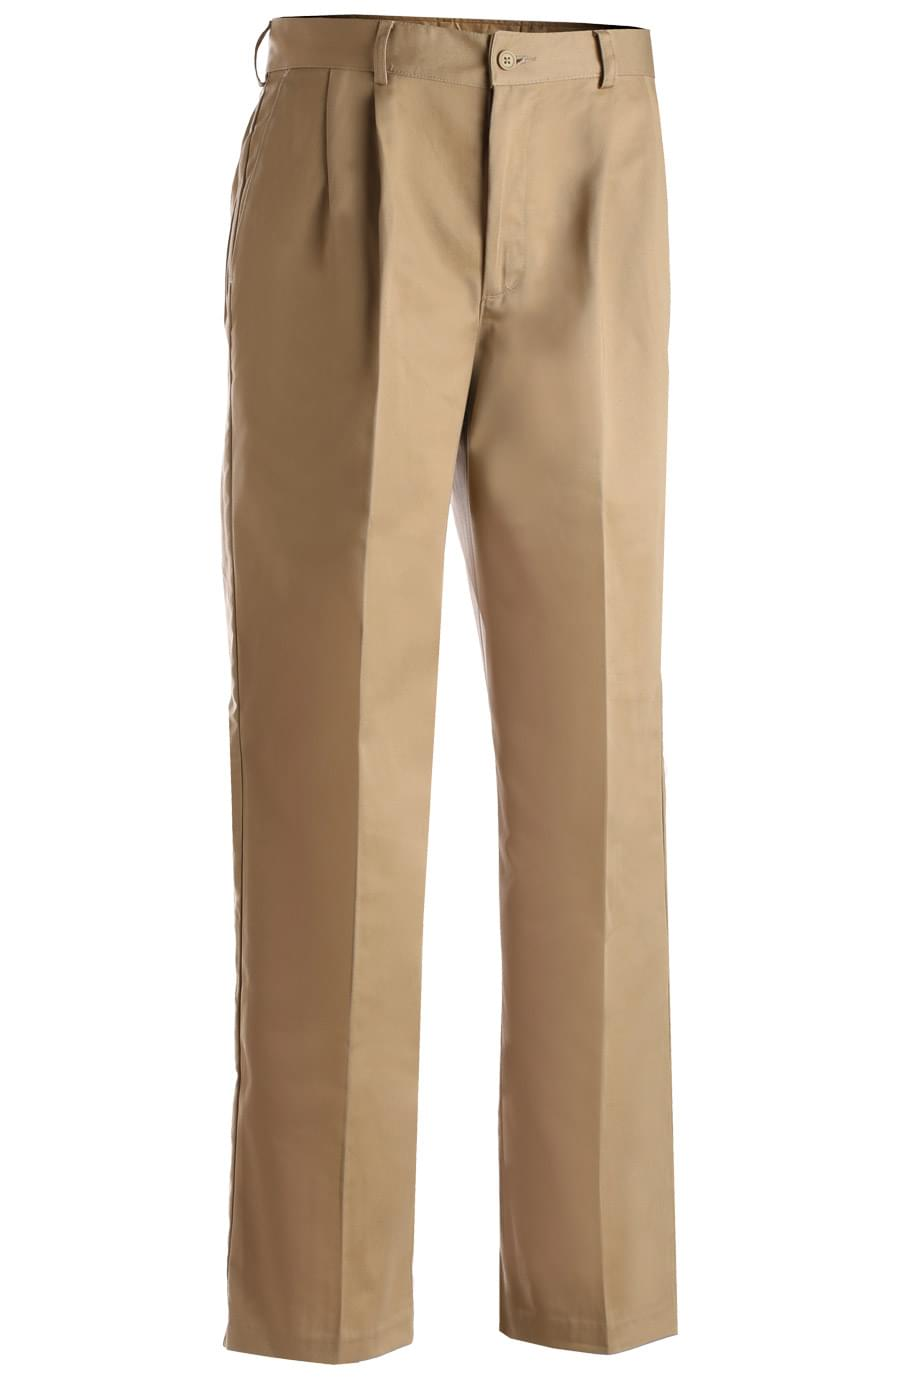 BLENDED CHINO PLEATED FRONT PANT